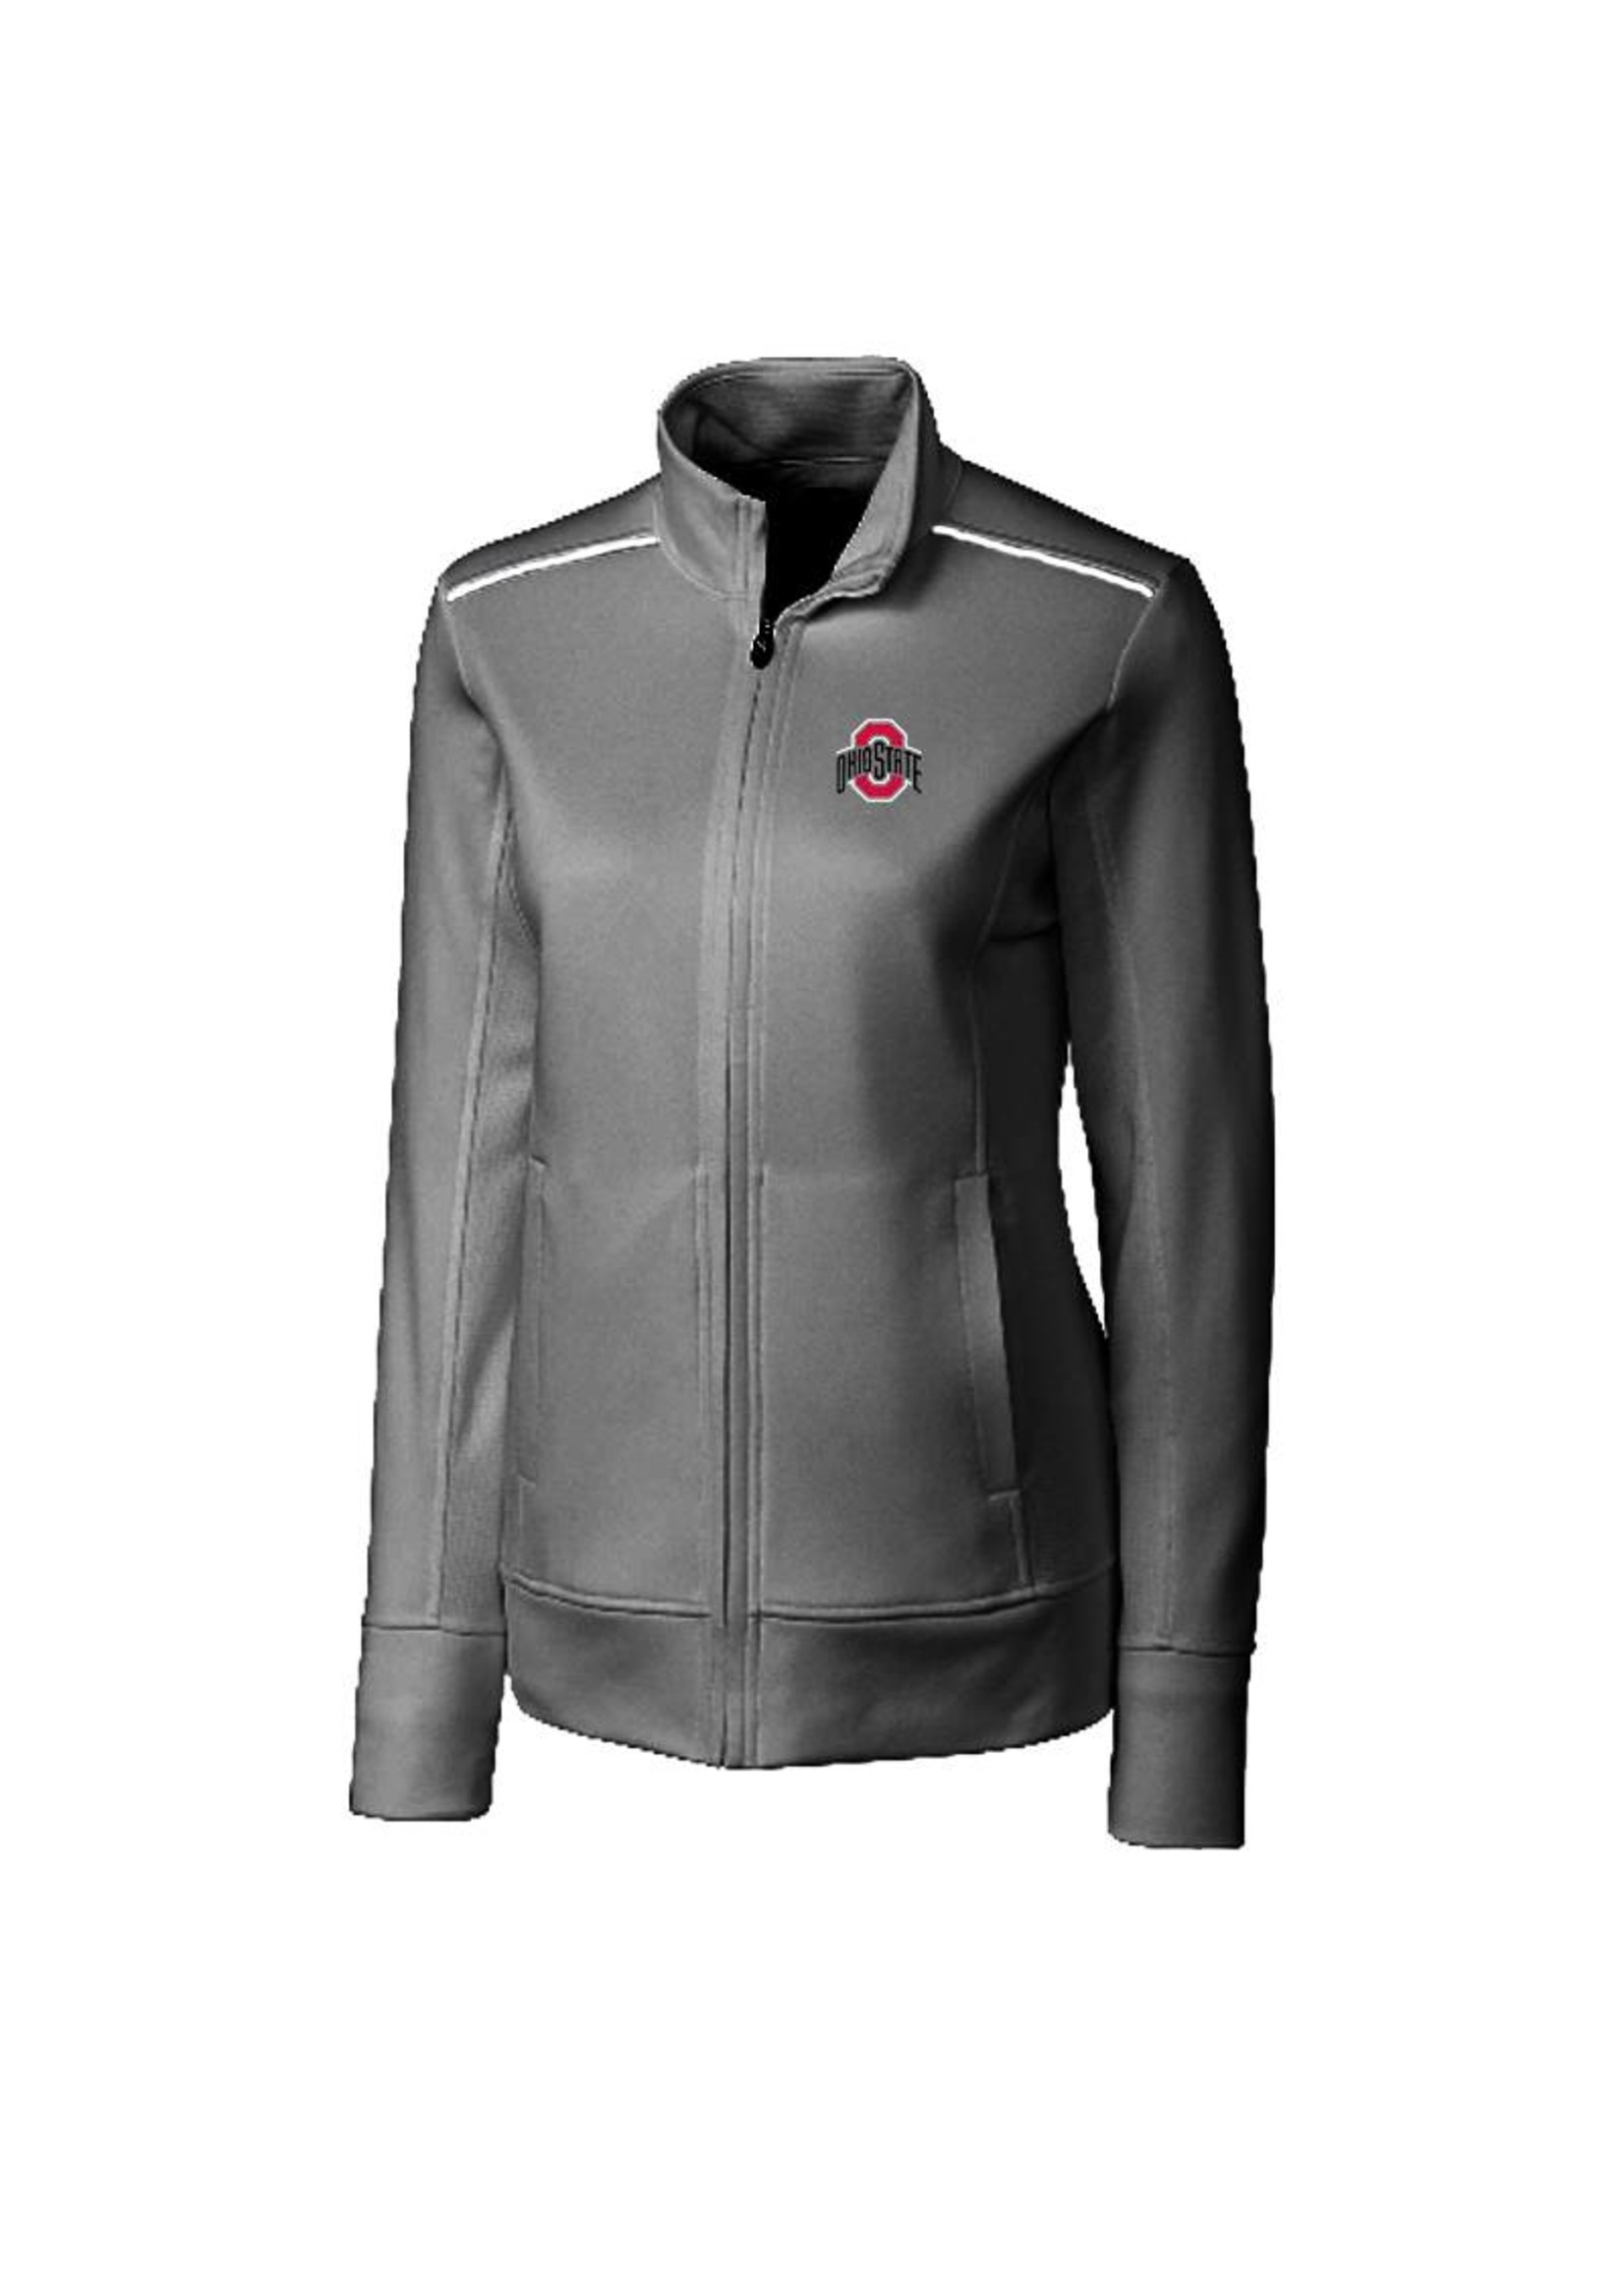 Cutter & Buck Ohio State University Women's Weathertec Ridge Full Zip Jacket